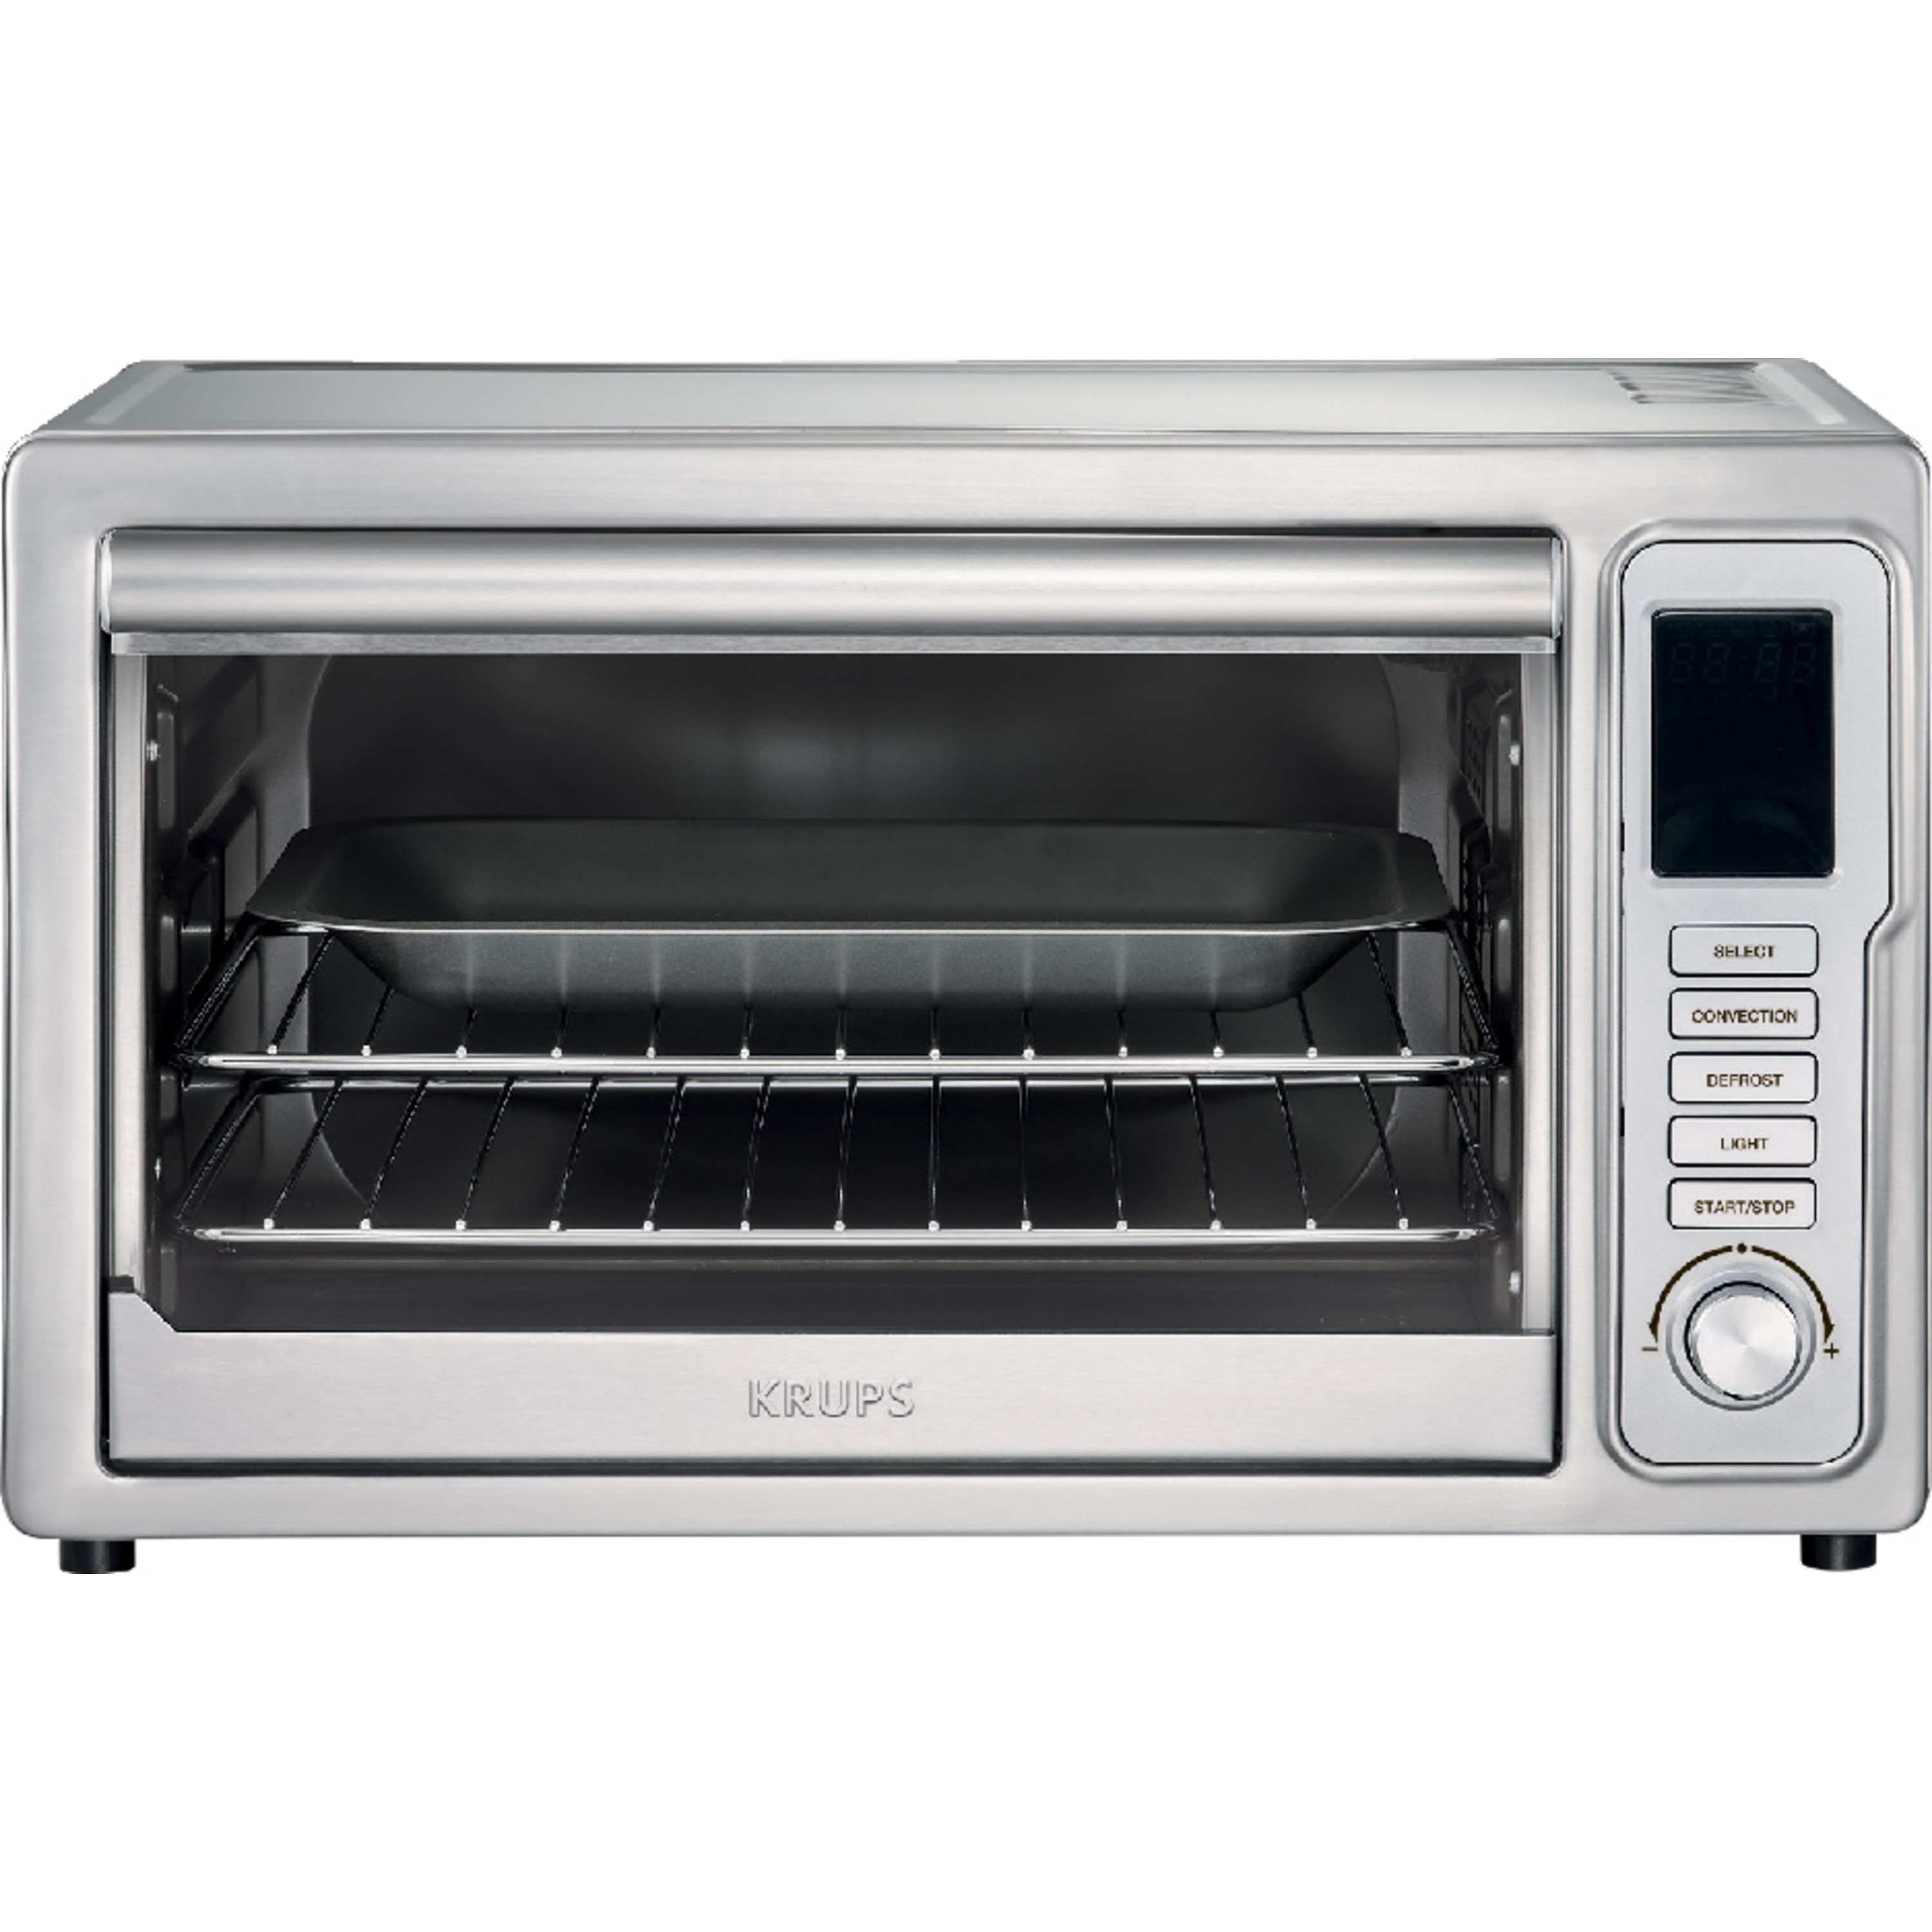 6 slices with 8 preset functions and Adjustable cooking time Silver KRUPS OK710D51 Stainless Steel Deluxe Oven